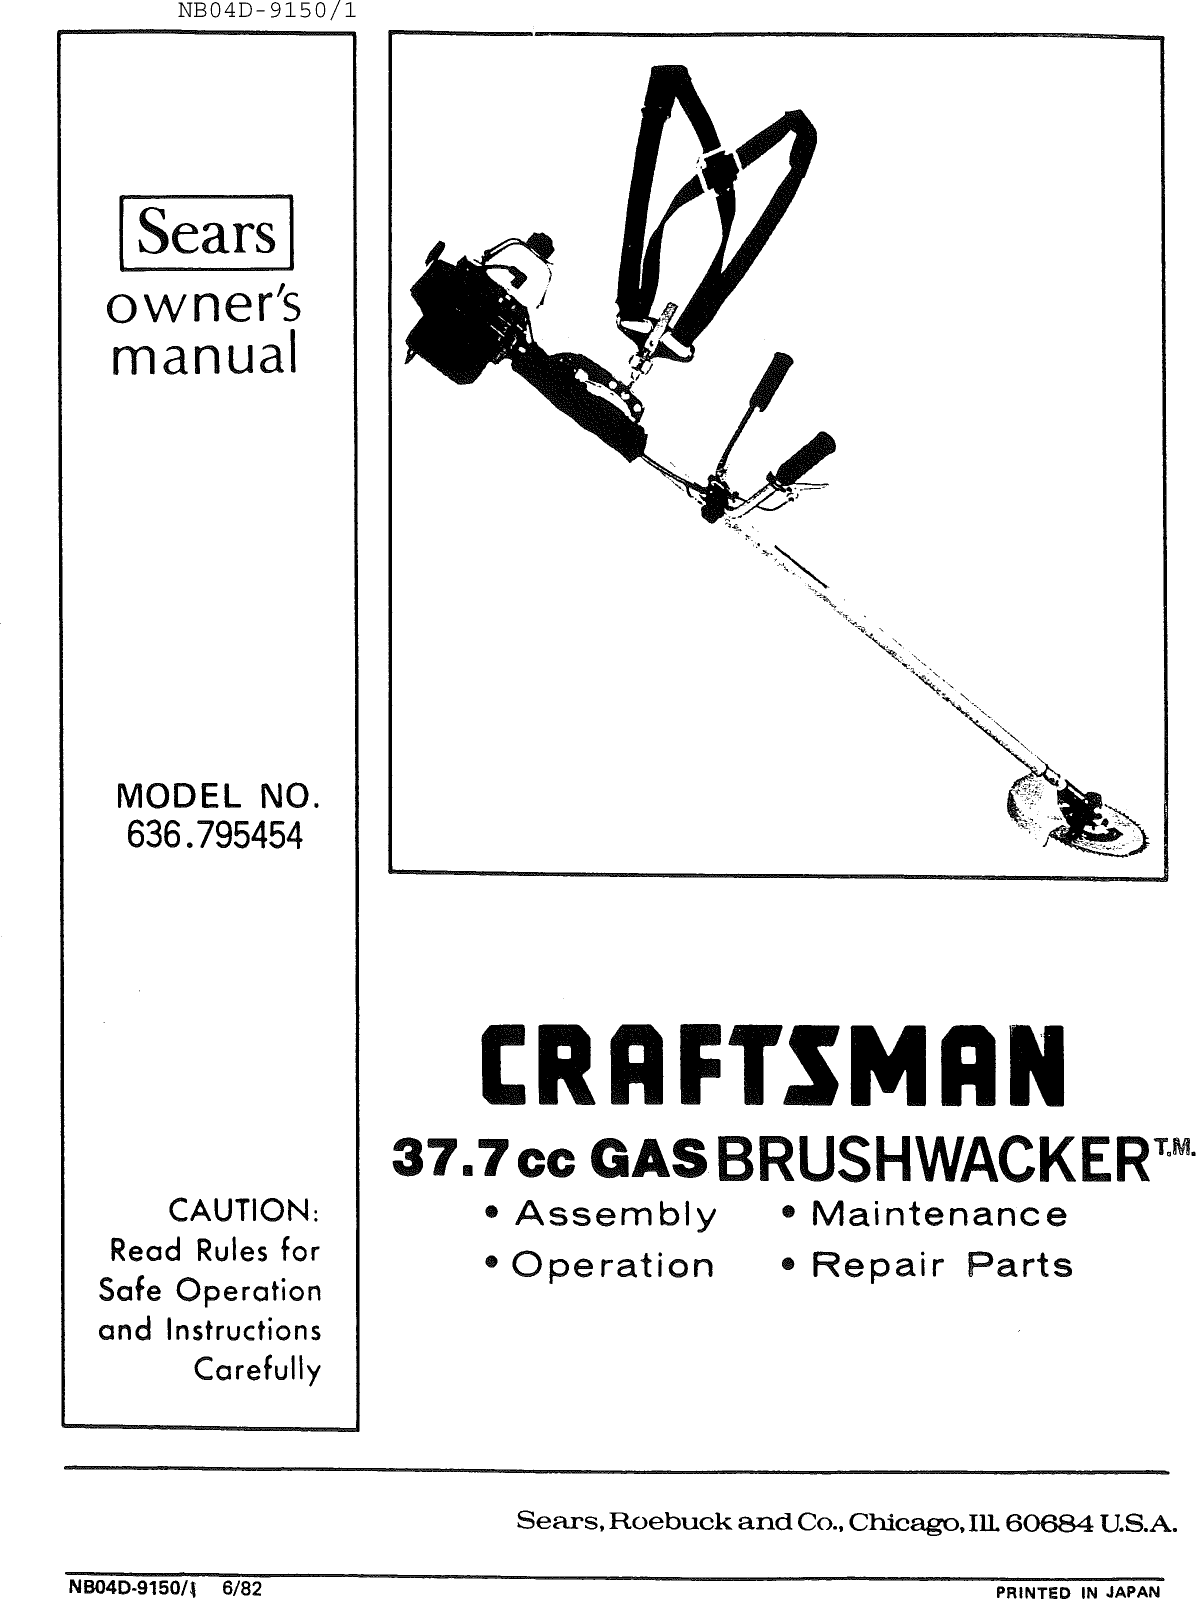 Craftsman 636795454 User Manual GAS BRUSHWACKER Manuals